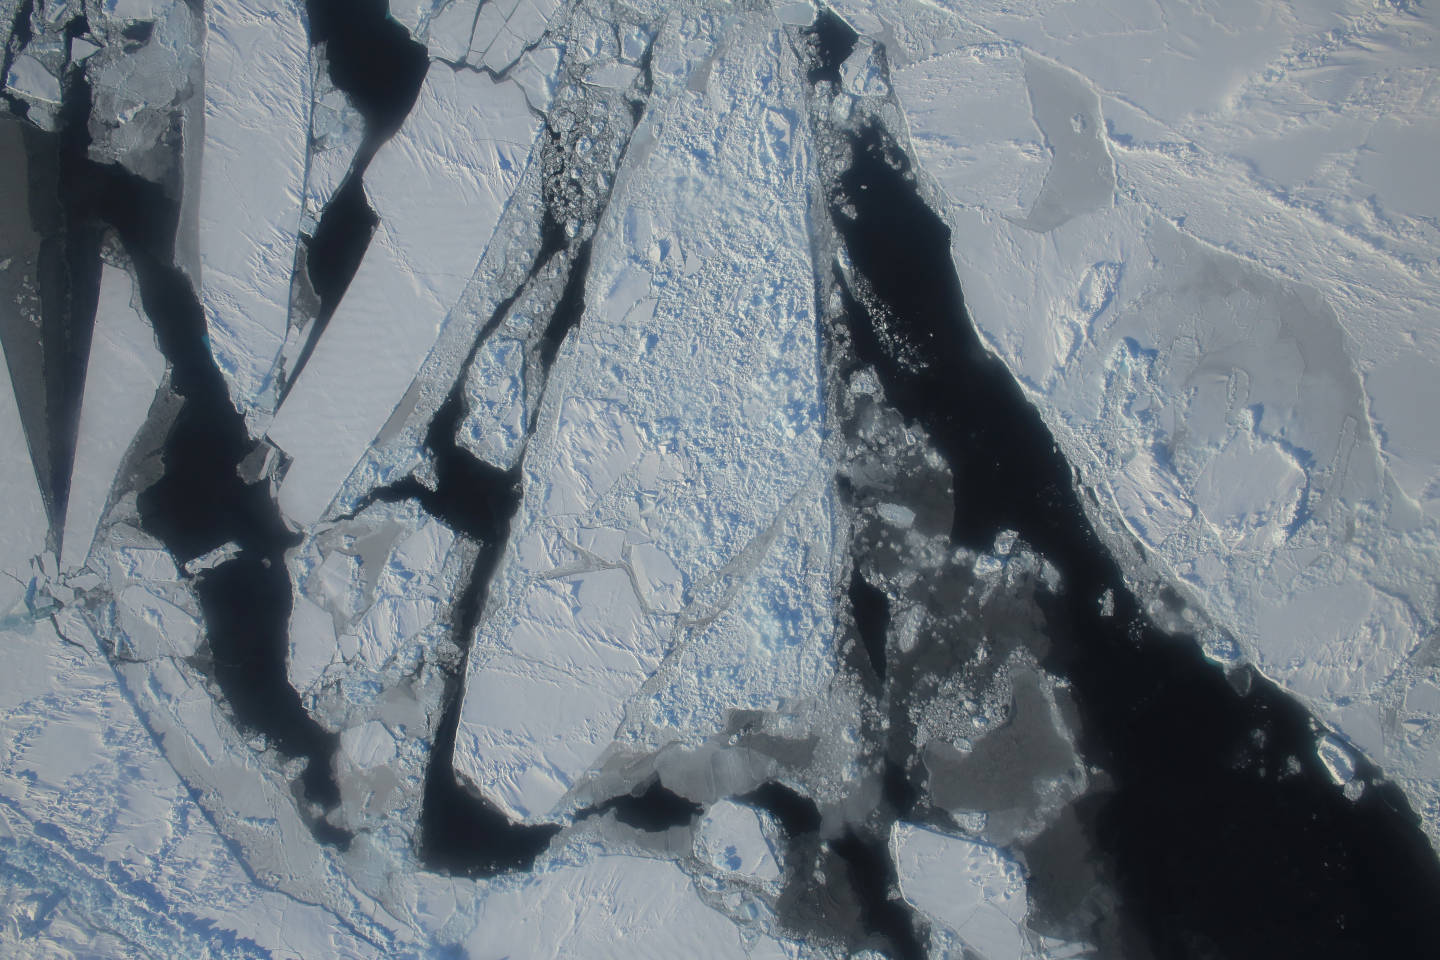 This photograph from a March 27, 2015 NASA IceBridge flight shows a mixture of deformed, snow-covered, first-year sea ice floes, interspersed by open-water leads, brash ice and thin, snow-free nilas and young sea ice over the East Beaufort Sea. Nilas are thin sheets of smooth, level ice less than 10 centimeters (4 inches) thick and appear darkest when thin.  NASA/Operation Ice Bridge.